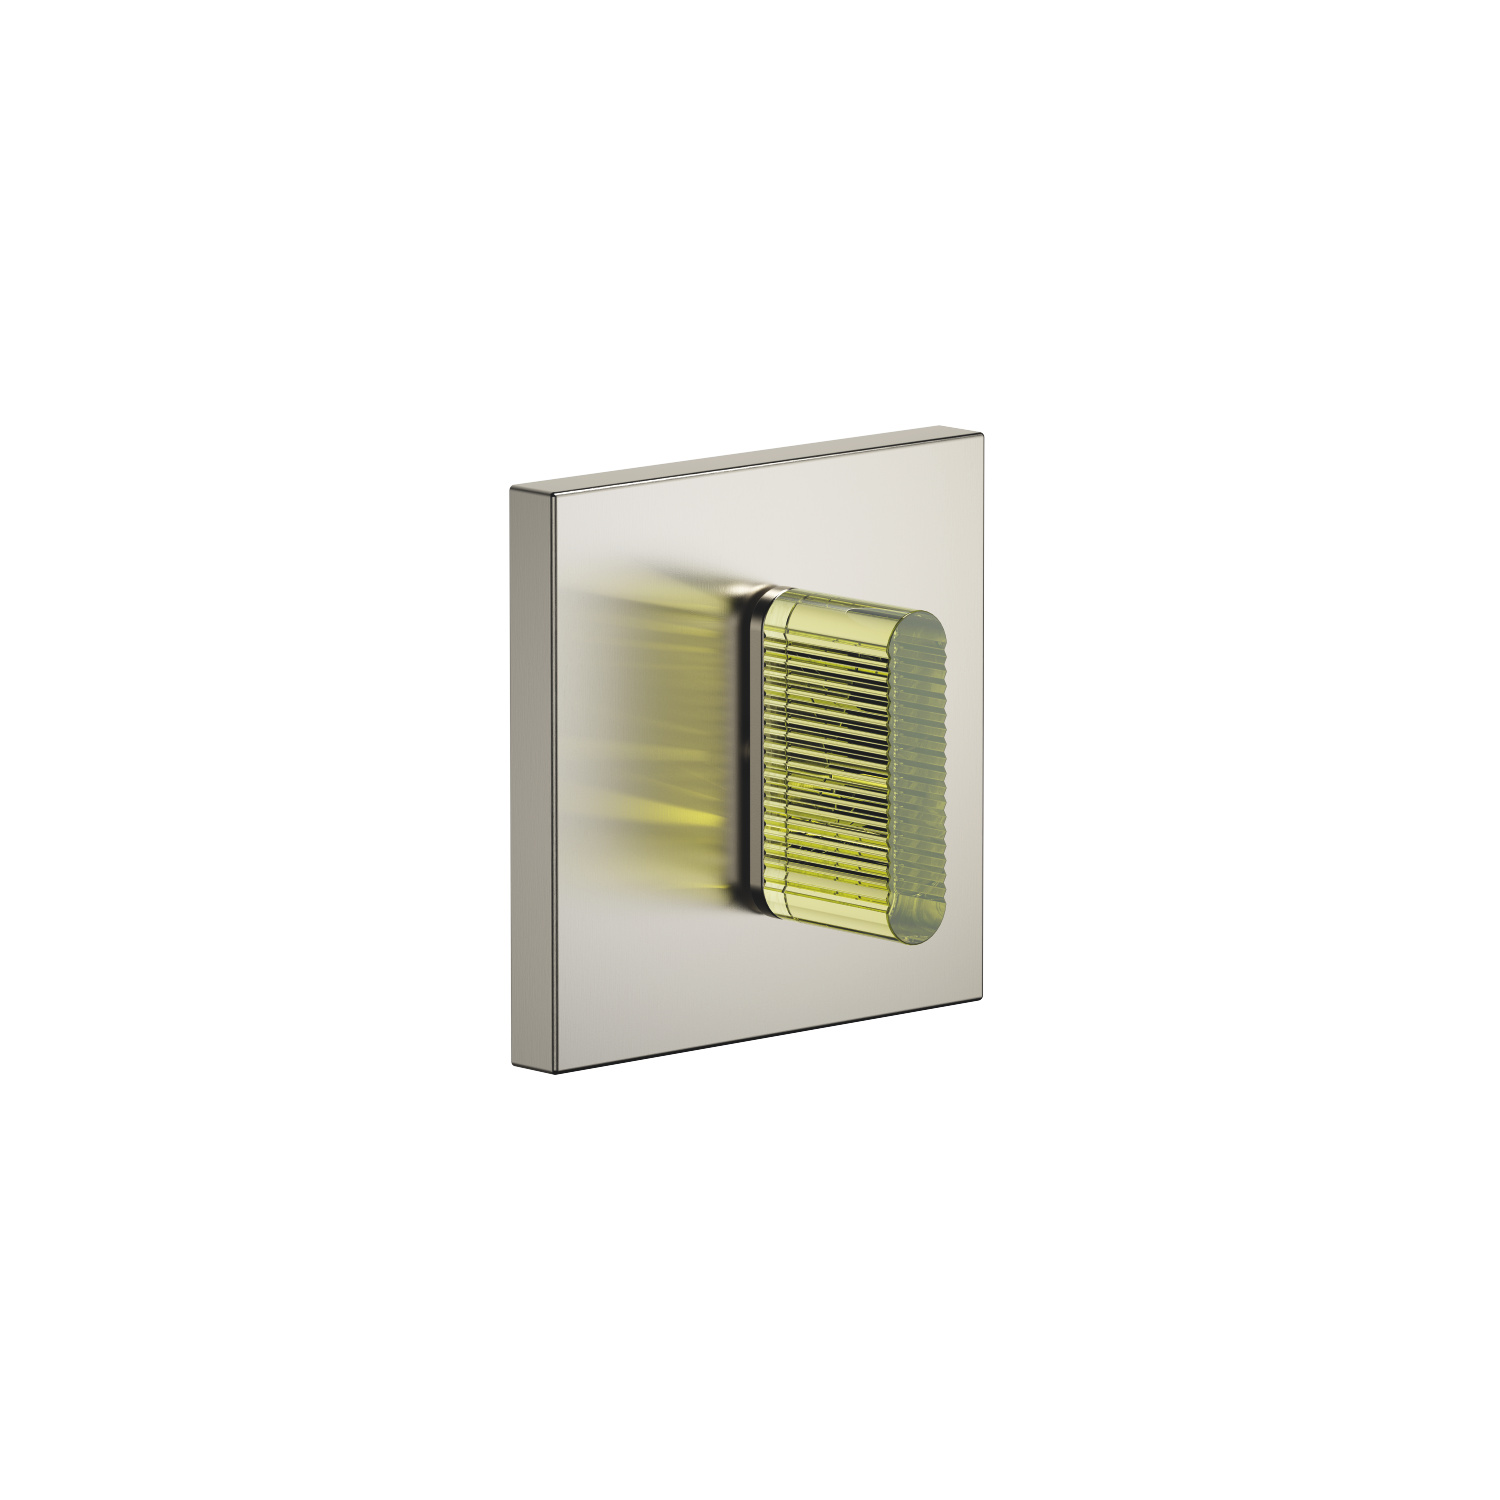 Wall mounted two- and three-way diverter trim - platinum matte